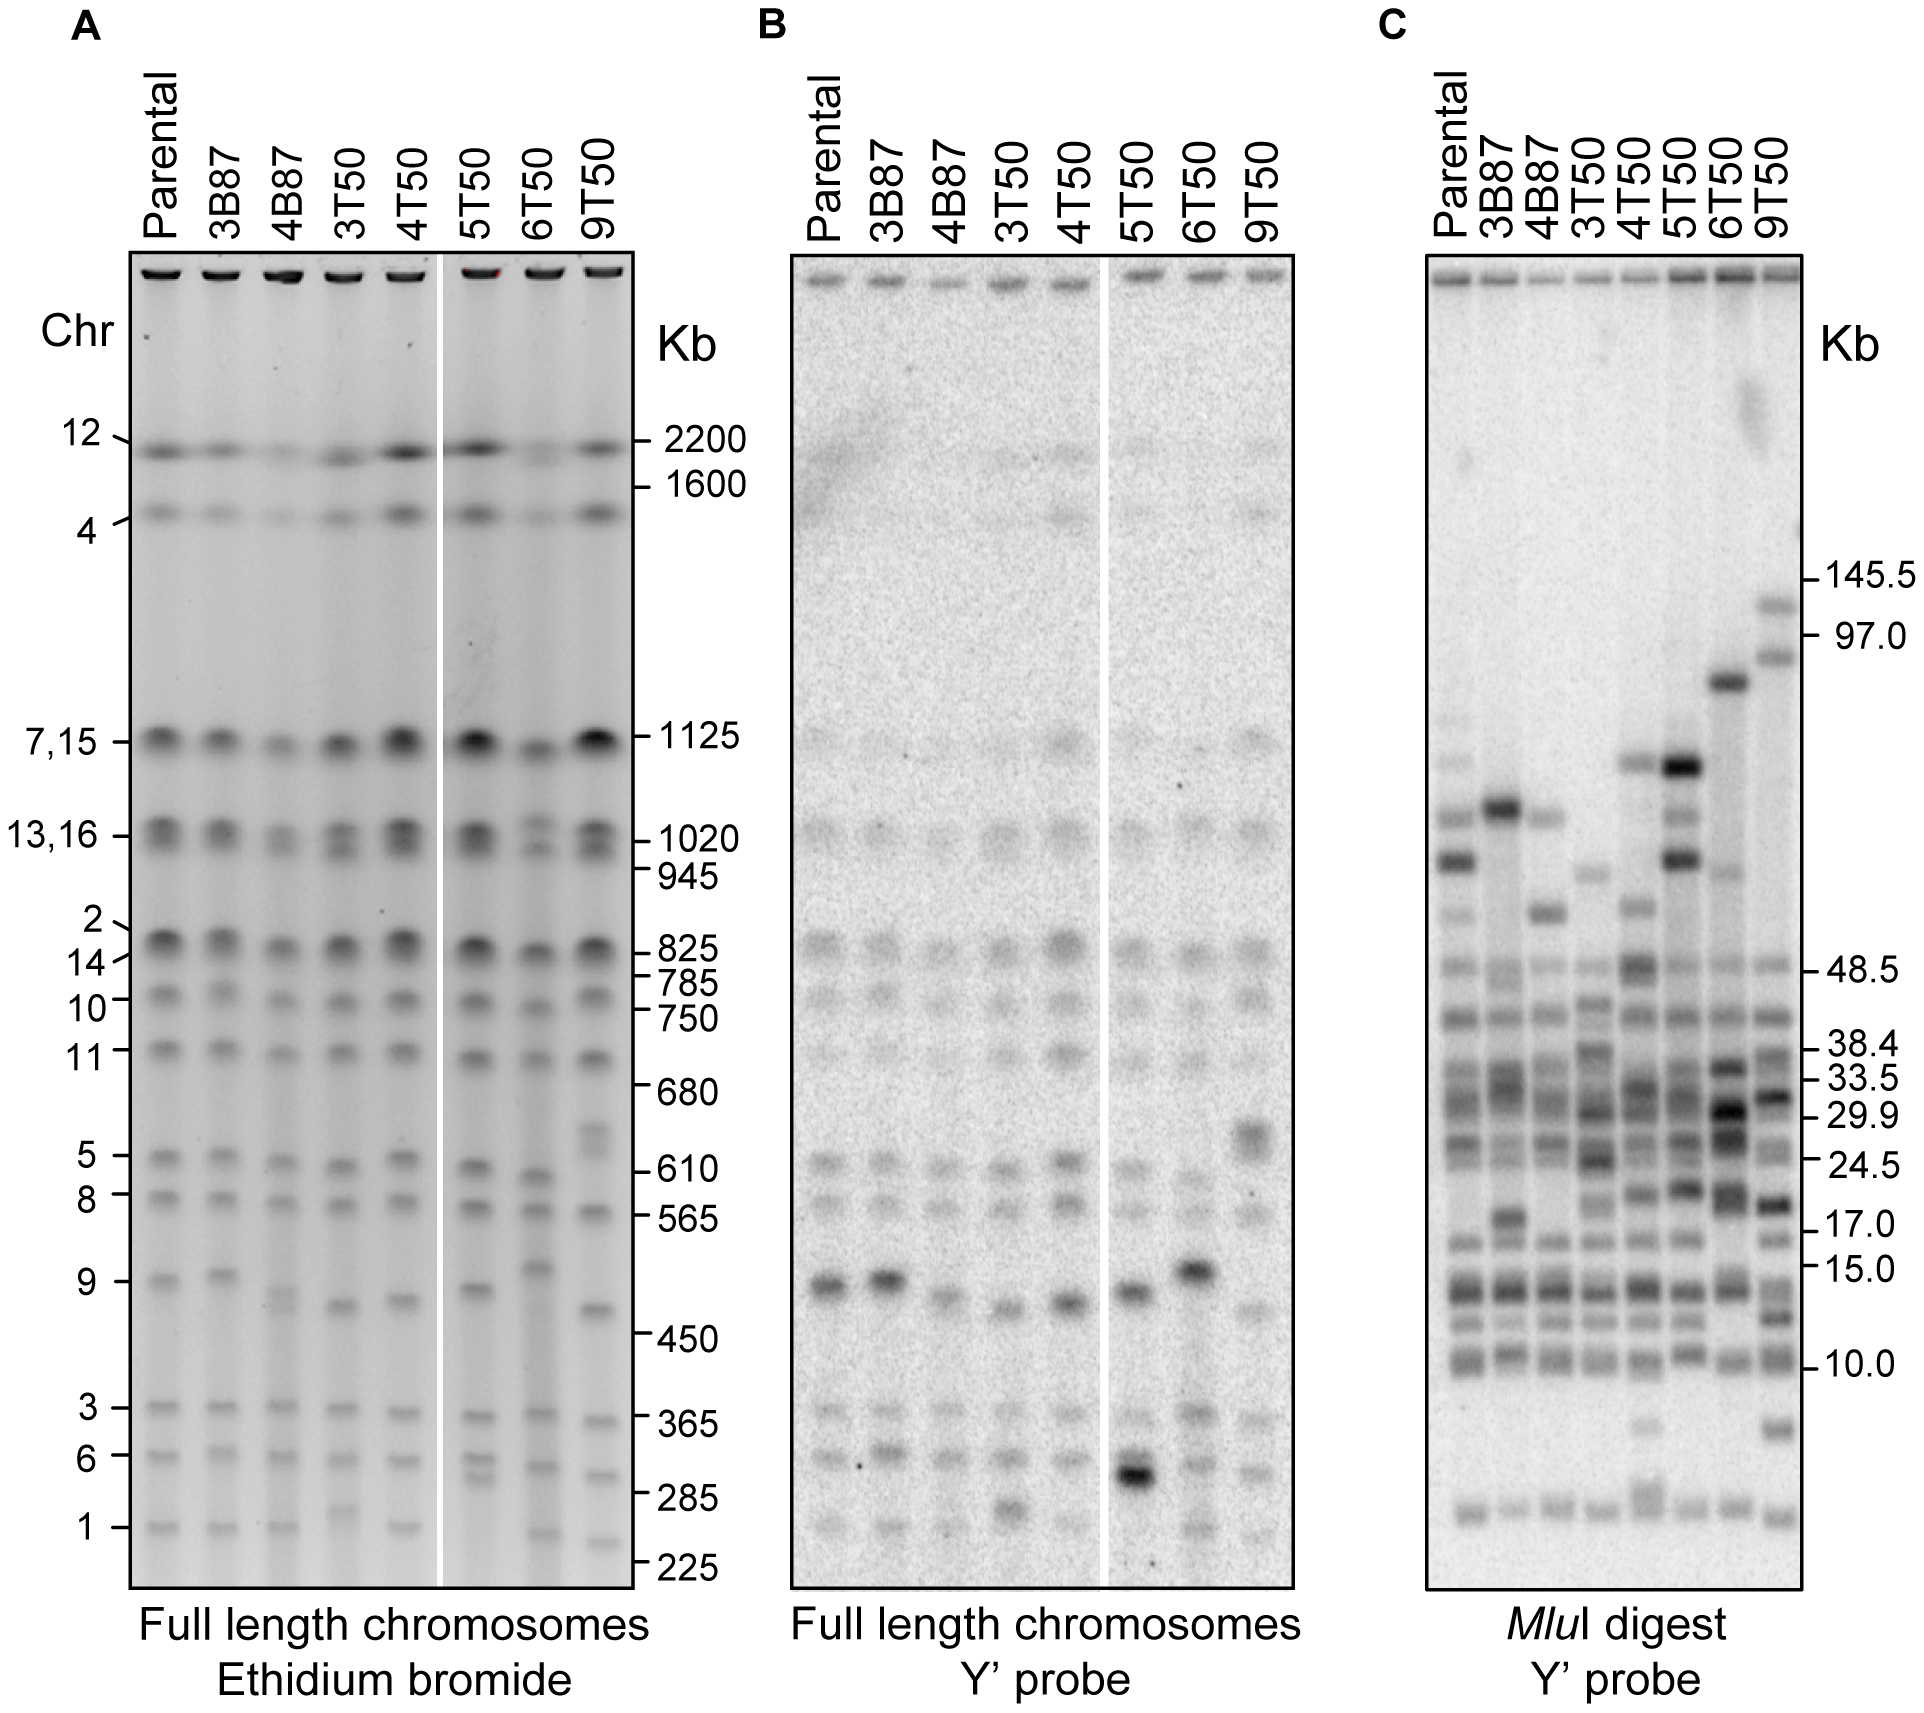 Physical analysis of chromosomes in vegetative and meiotic lines.